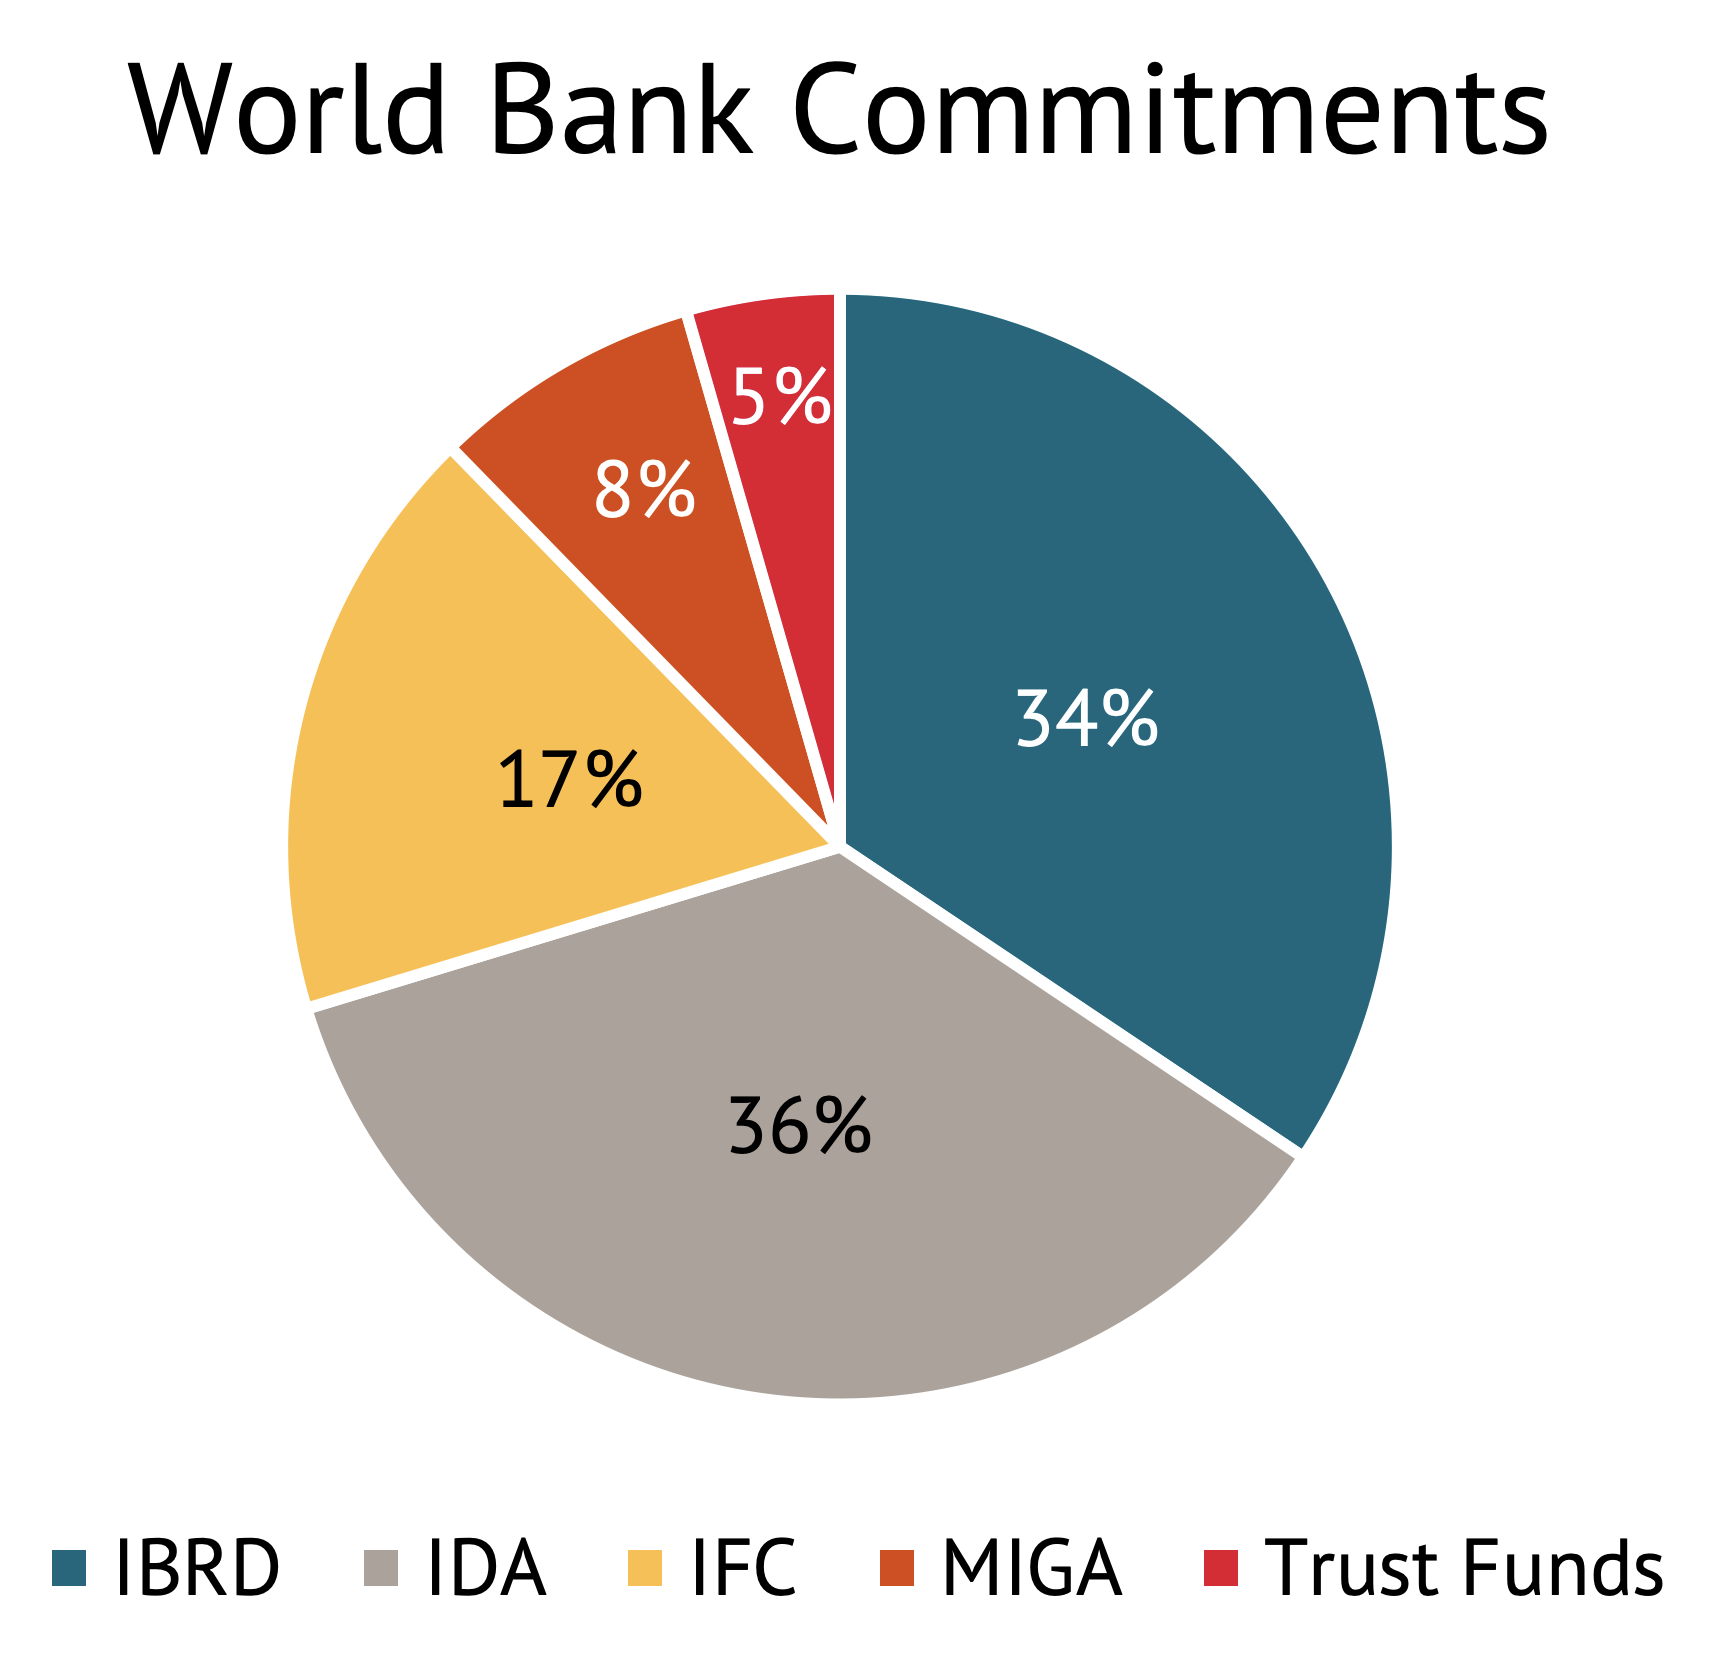 A pie chart showing World Bank 2018 commitments